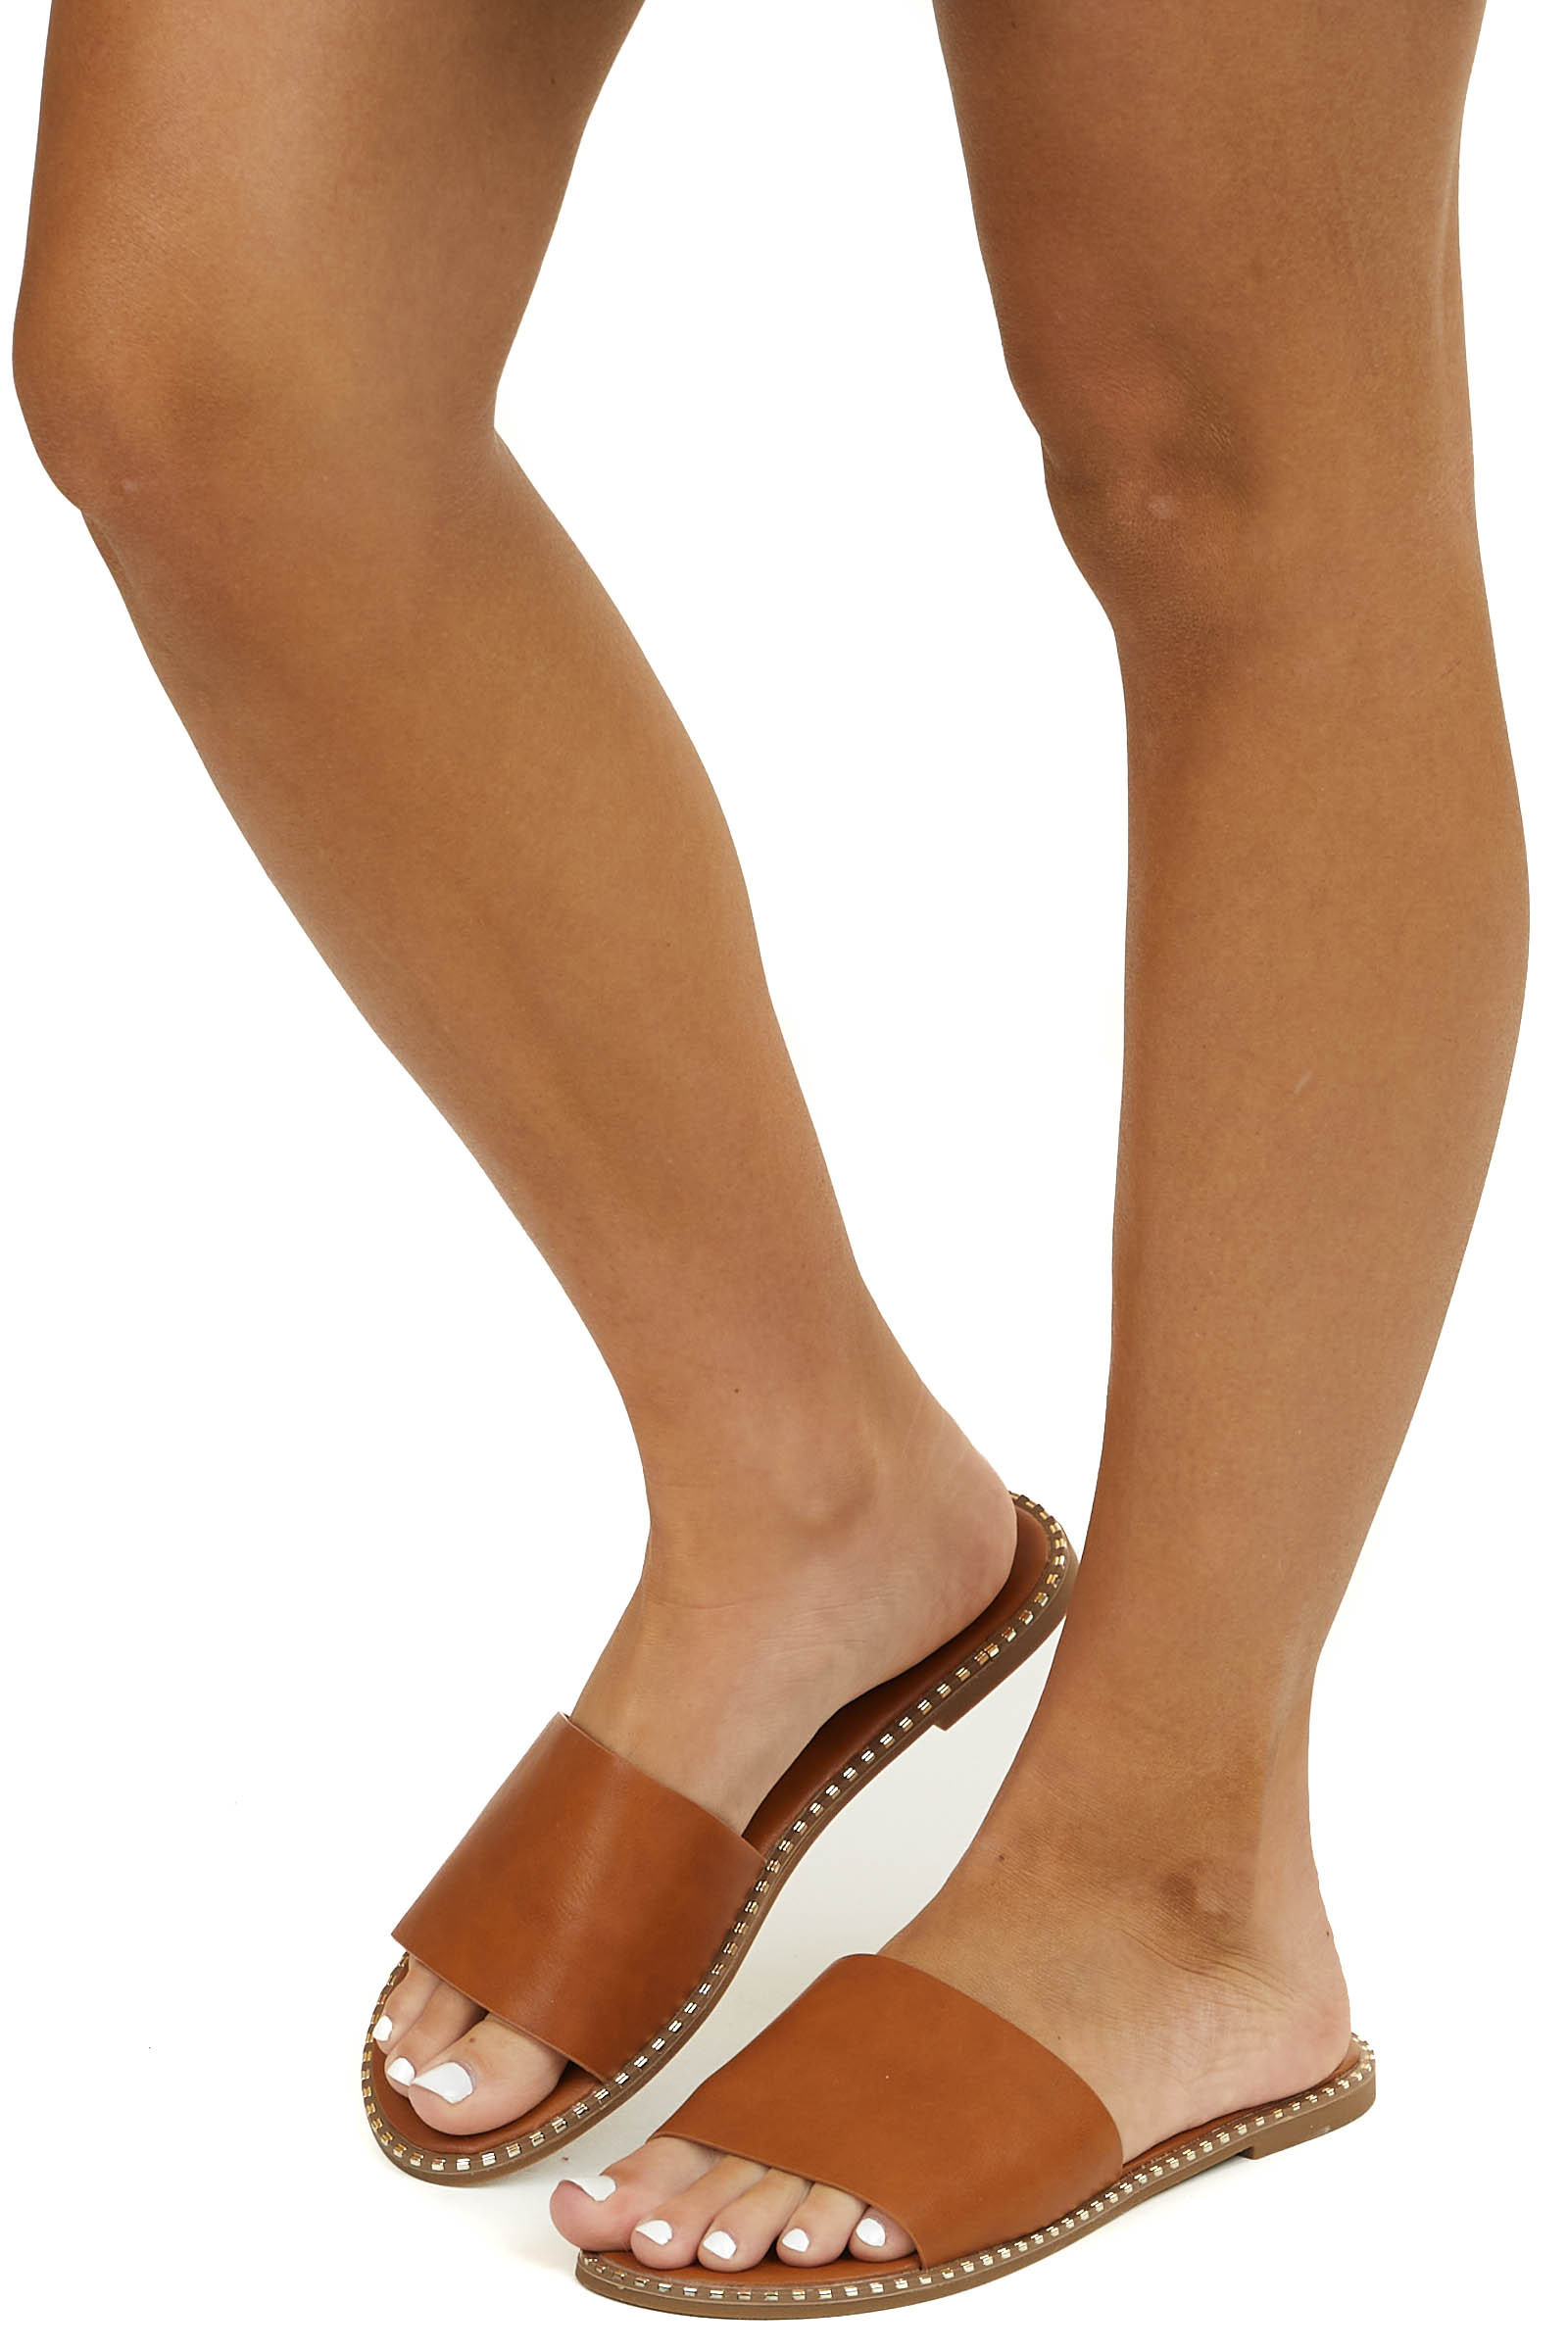 Cognac Faux Leather Slip On Sandal with Gold Edge Details